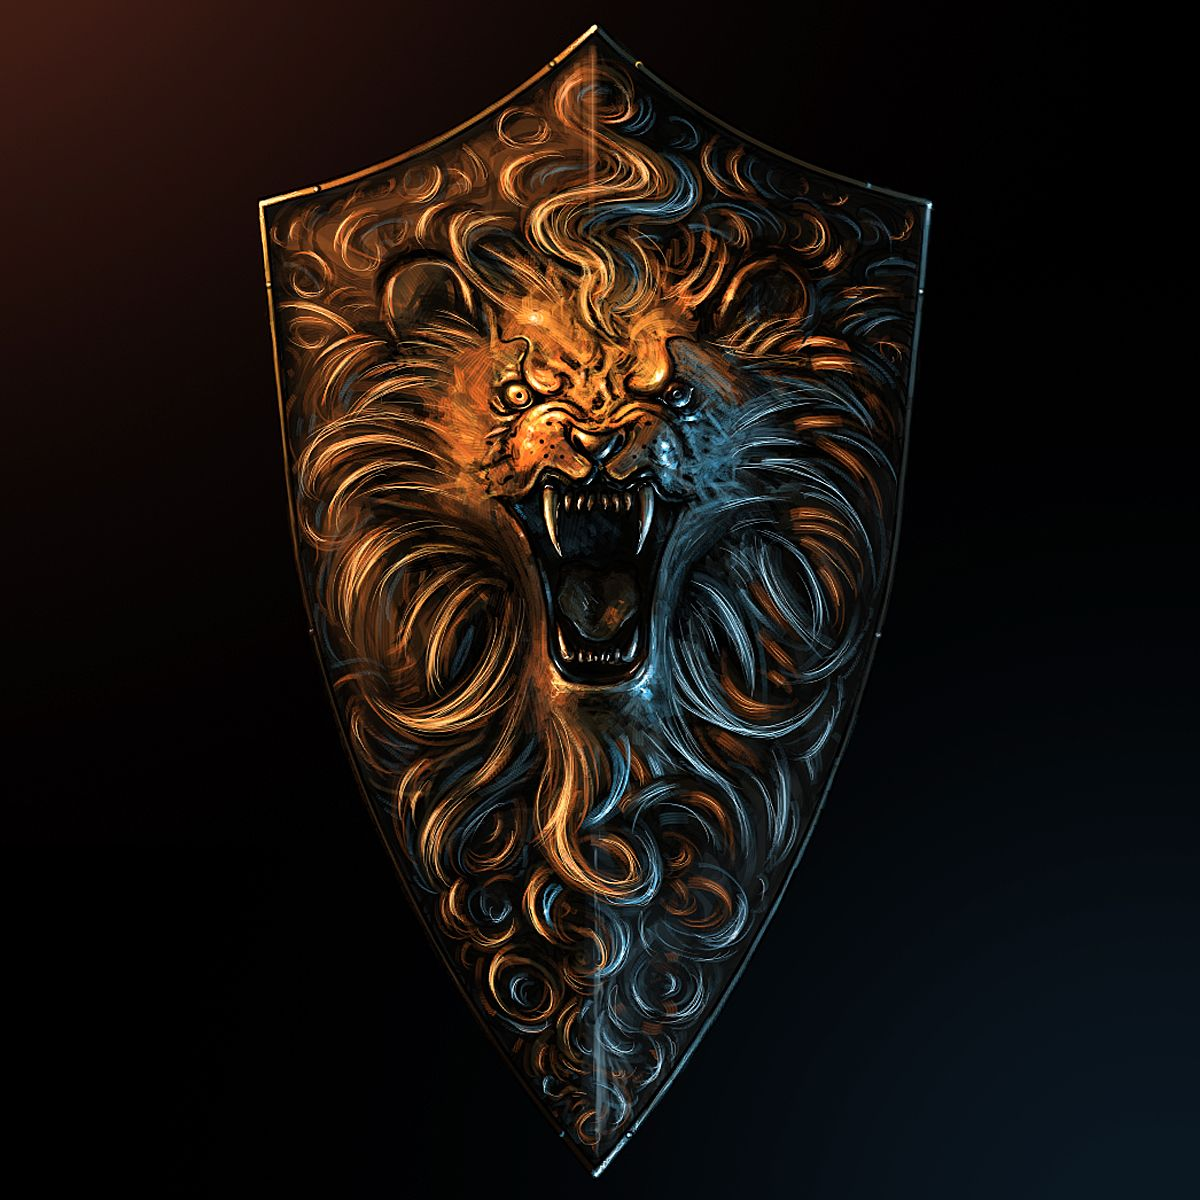 Hd Wallpapers 3d Art Tattoo Design: The Best Of Dark Souls 2′s Shield Design